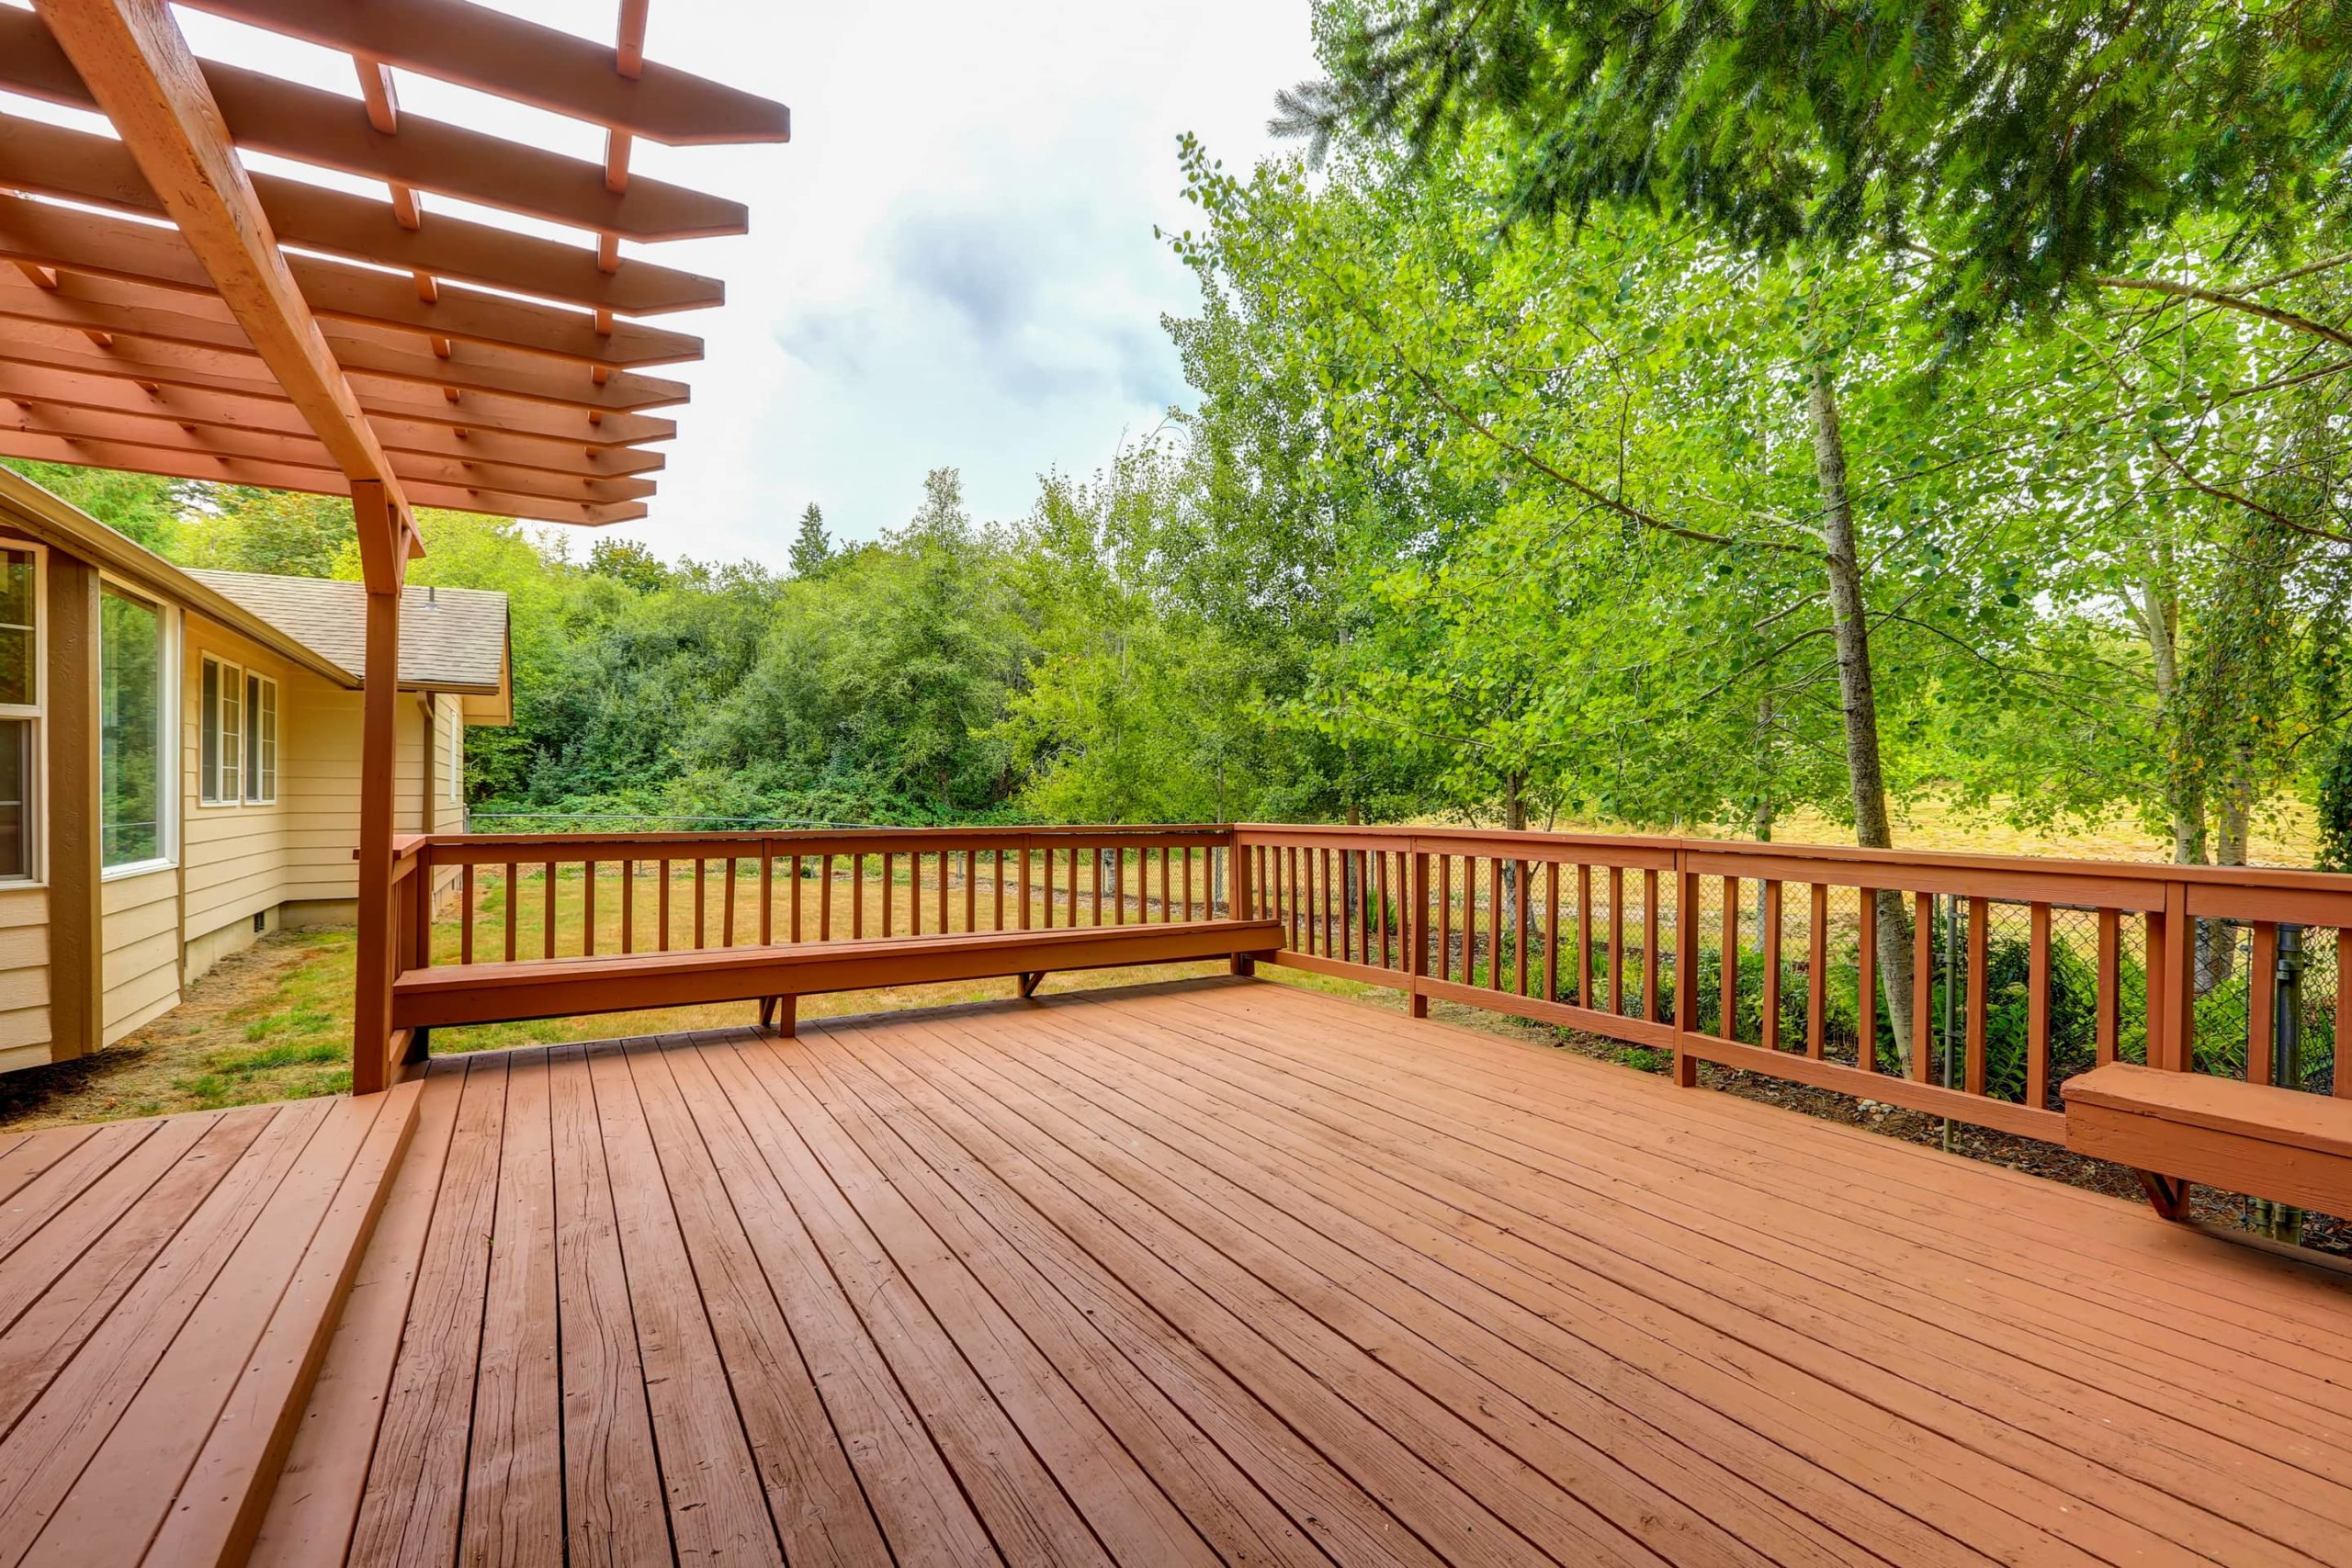 This image shows a beautifully crafted large wooden deck and pergola.